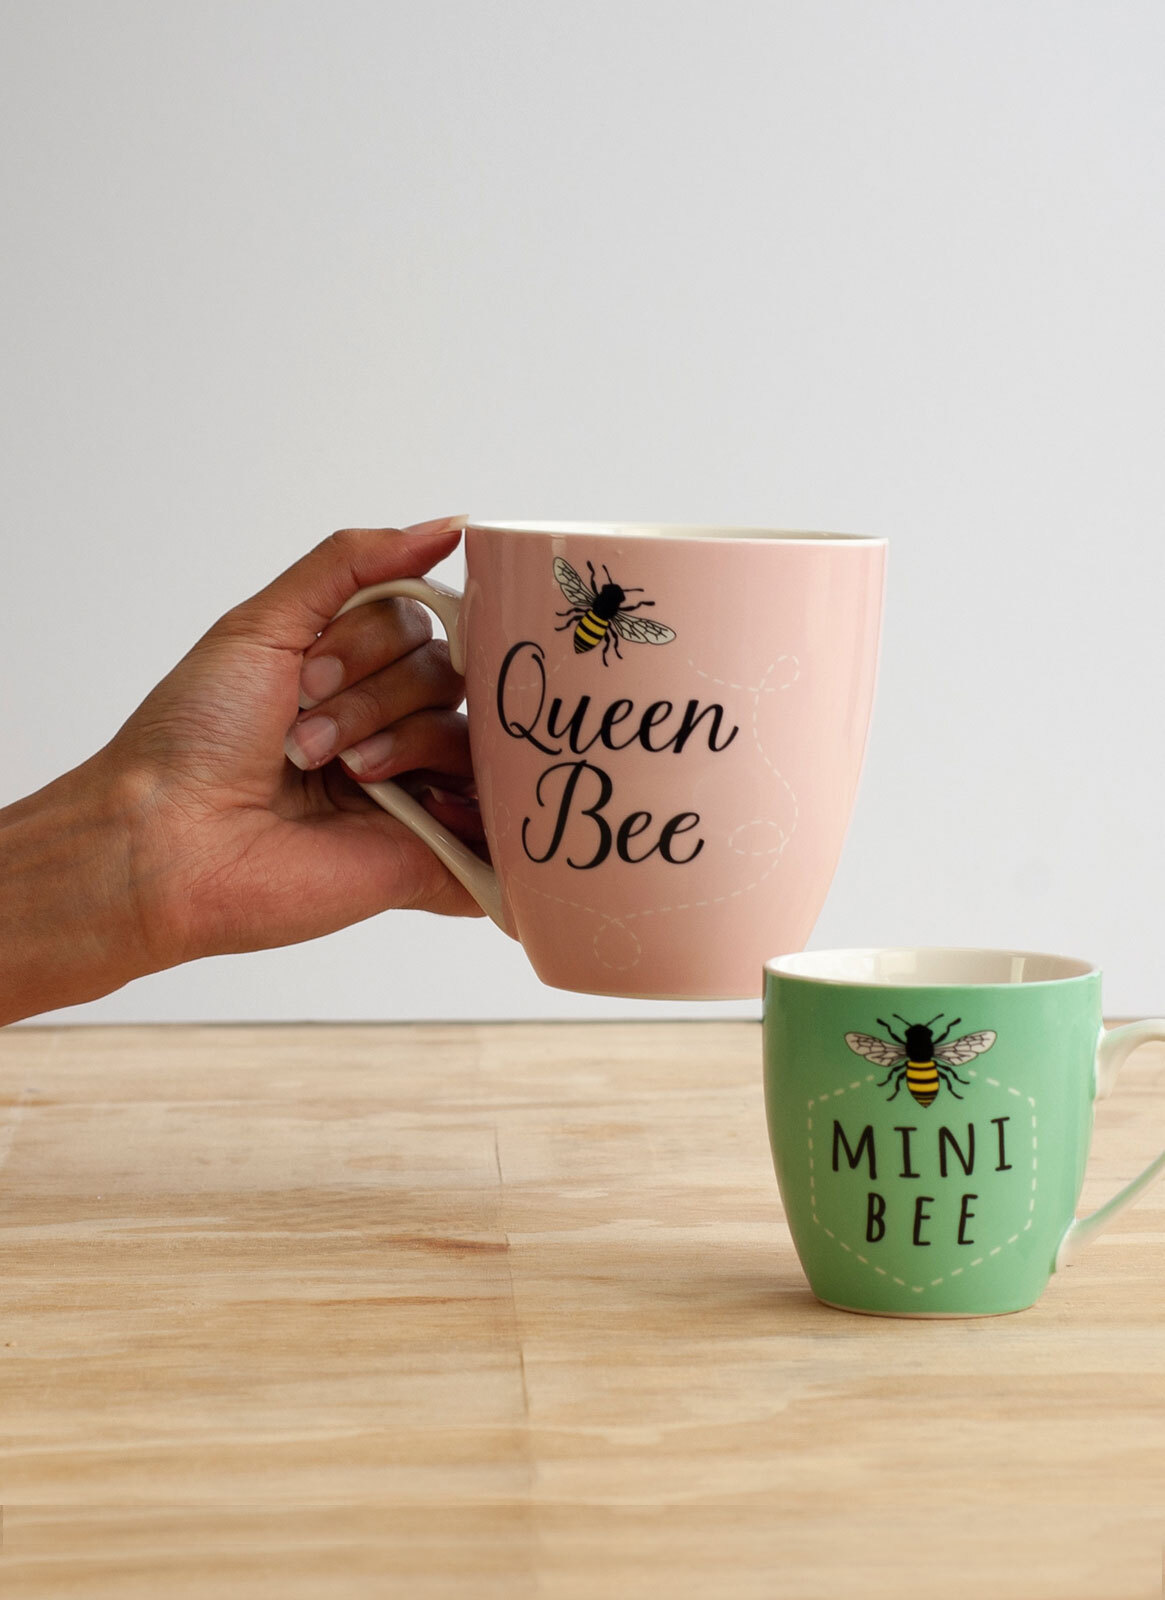 Queen Bee Mini Bee Twin Cup Gift Set Beautifuly Boxed Perfect Gift For Mum Or Nan Mothersday First Mum Baby Or Wife Apidaelane